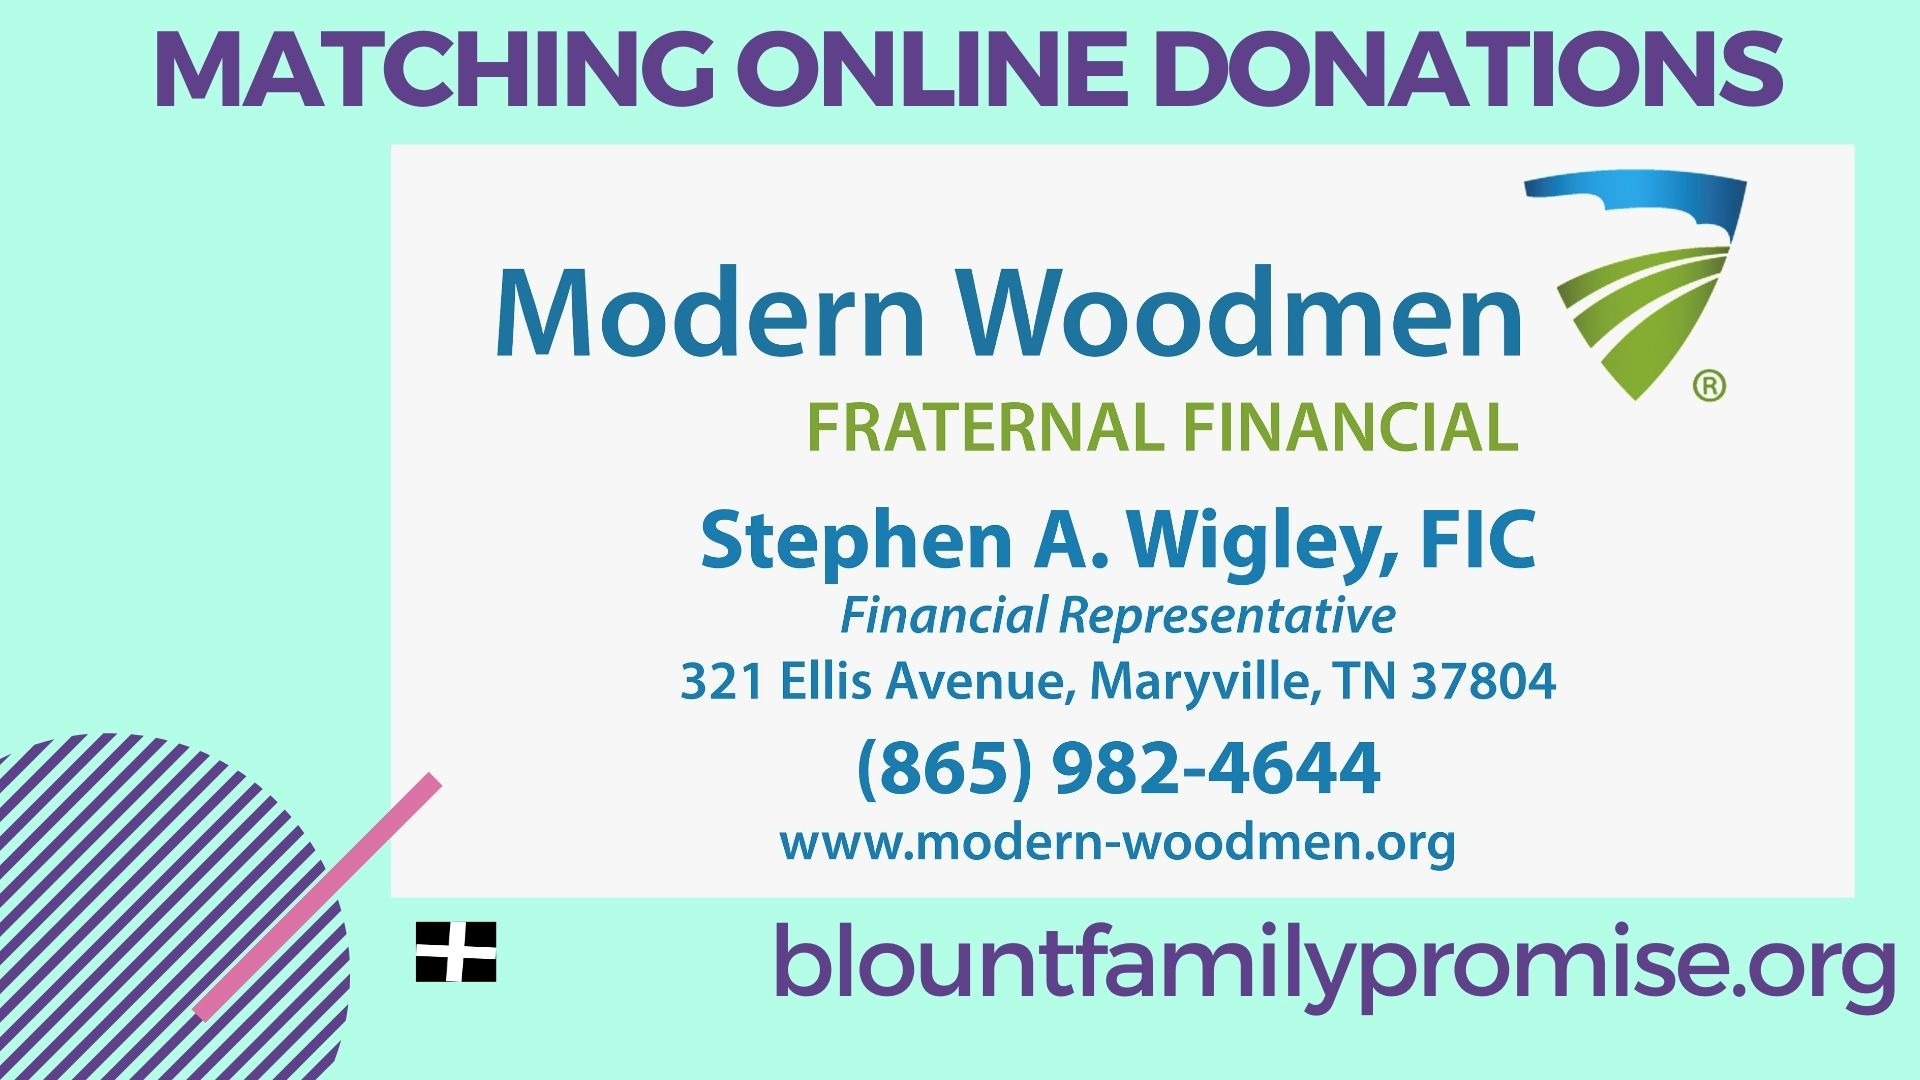 Modern Woodmen is Matching Spooktacular Online Donations!